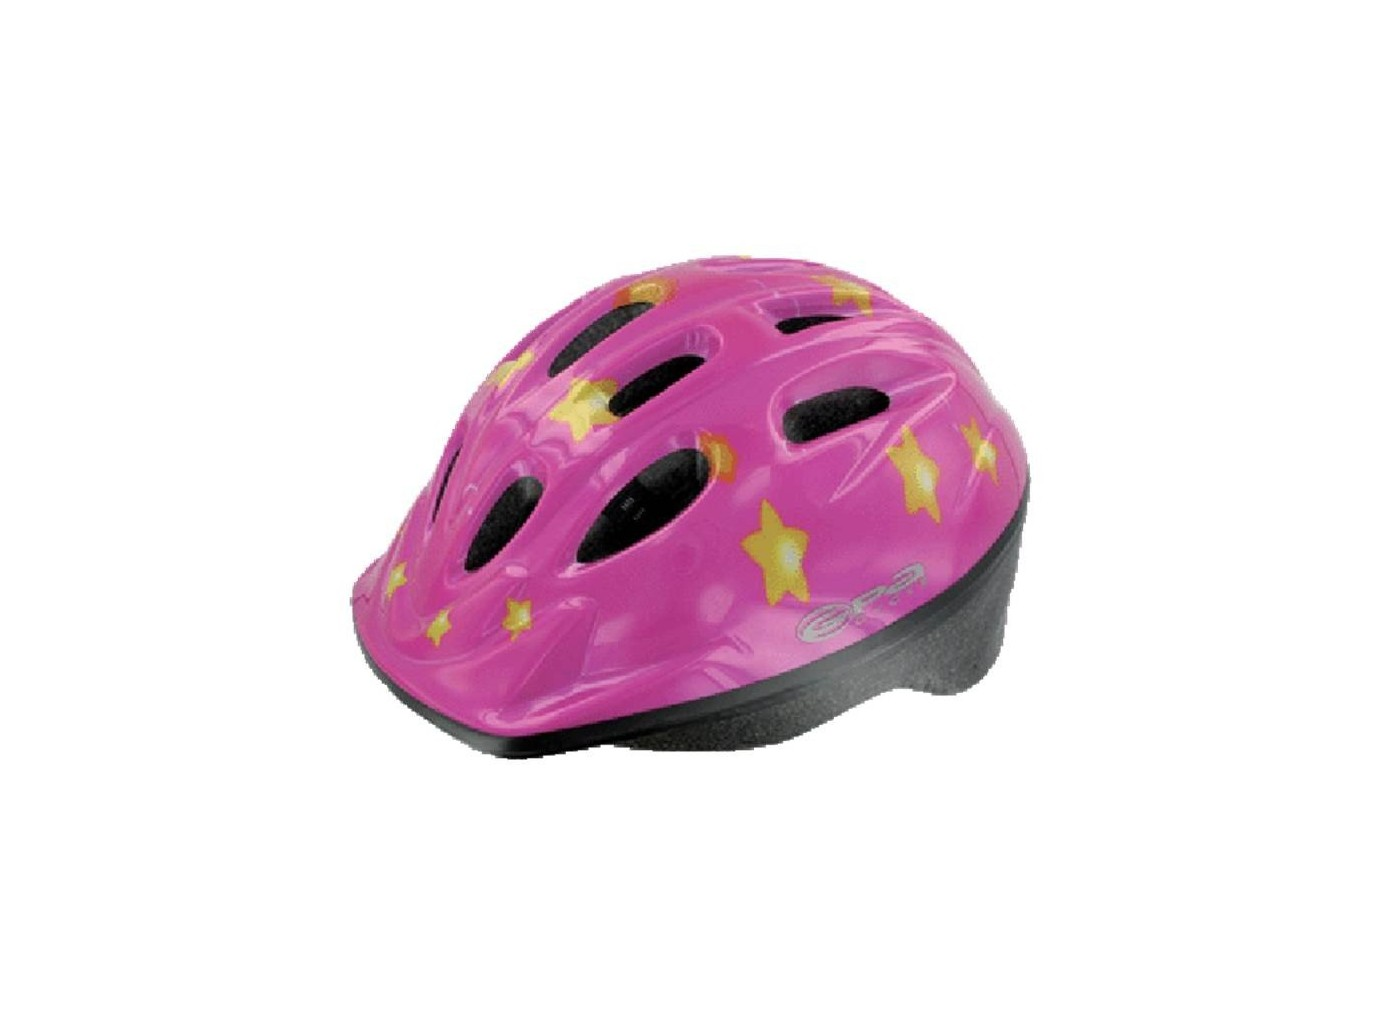 Gpa Cycle Casque Enfant 6 Ventilations S 54 58 Rose